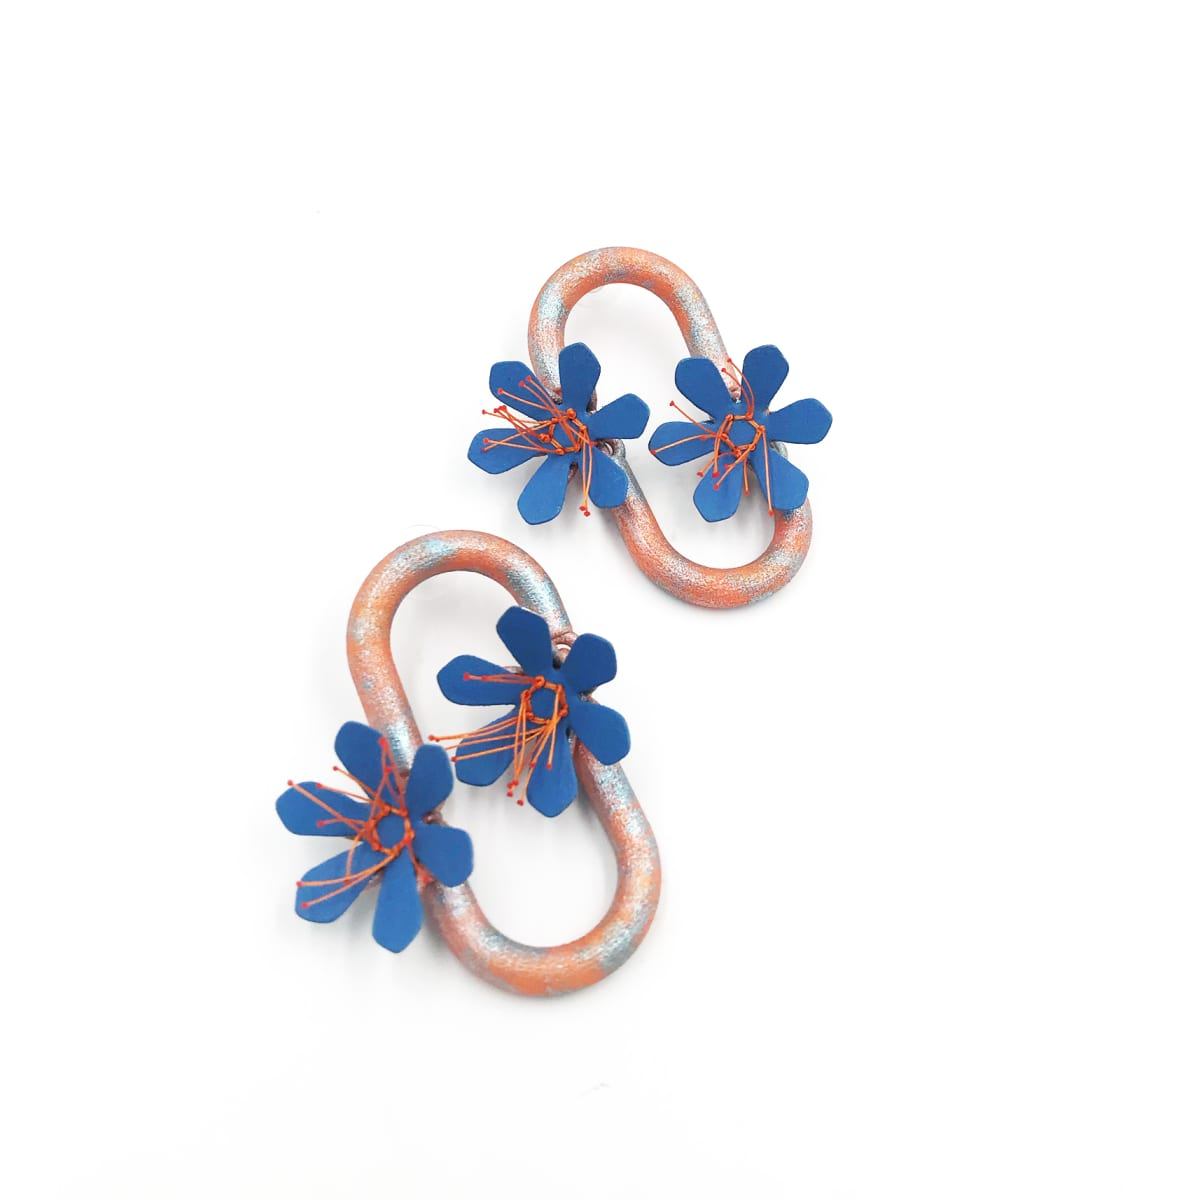 Aric Verrastro, Cadena de Flores Earrings